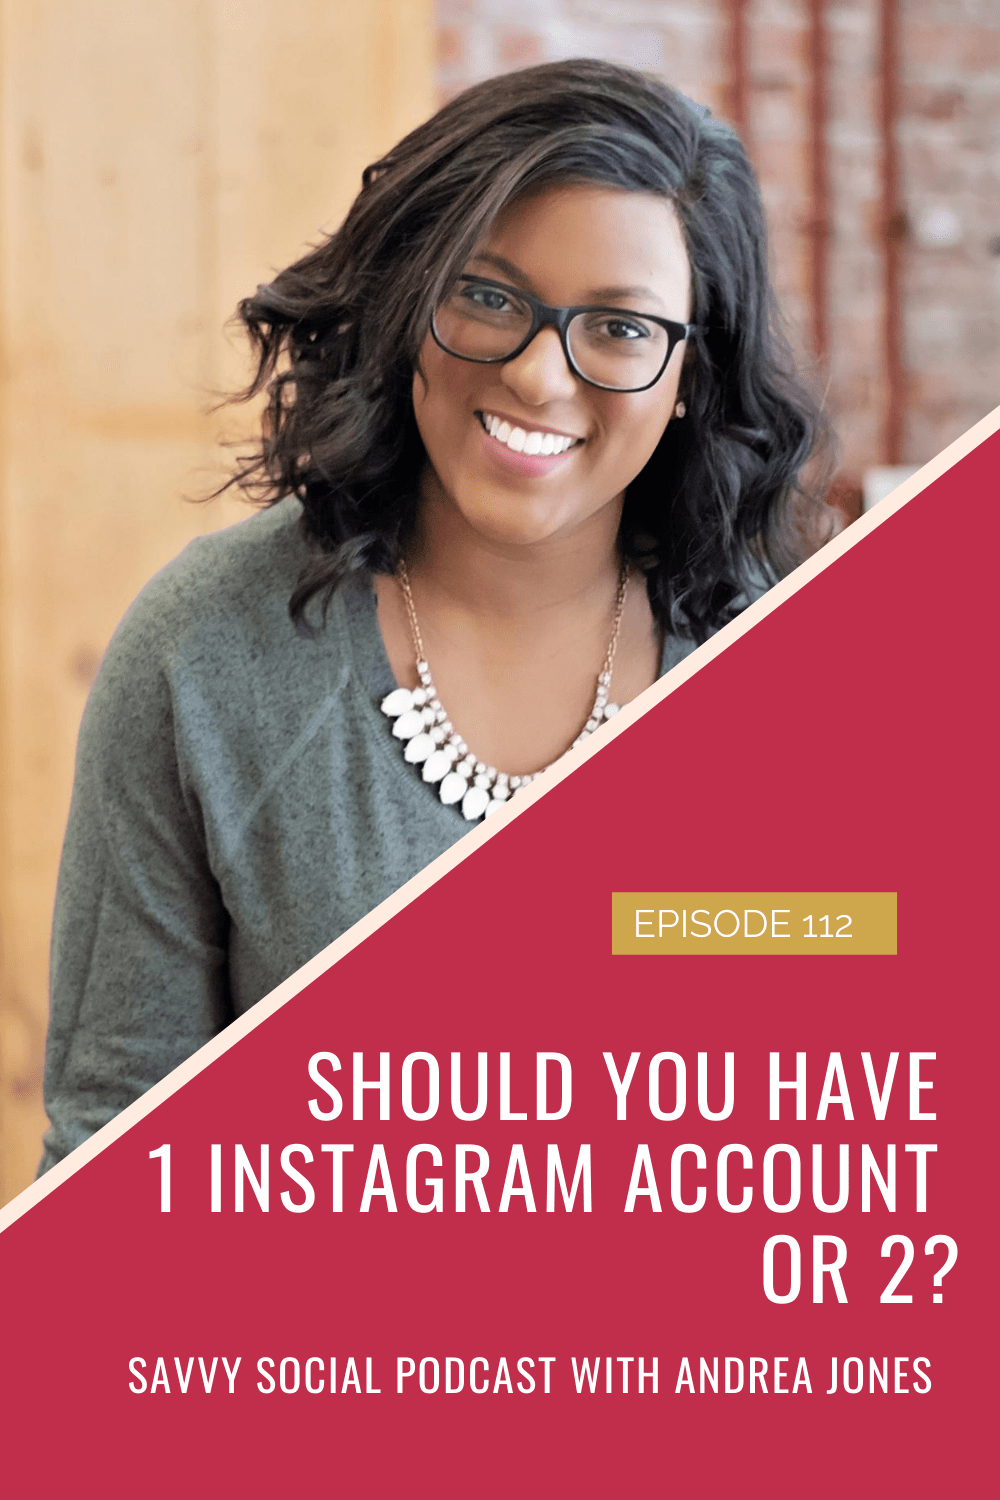 Should You Have 1 Instagram Account or 2?